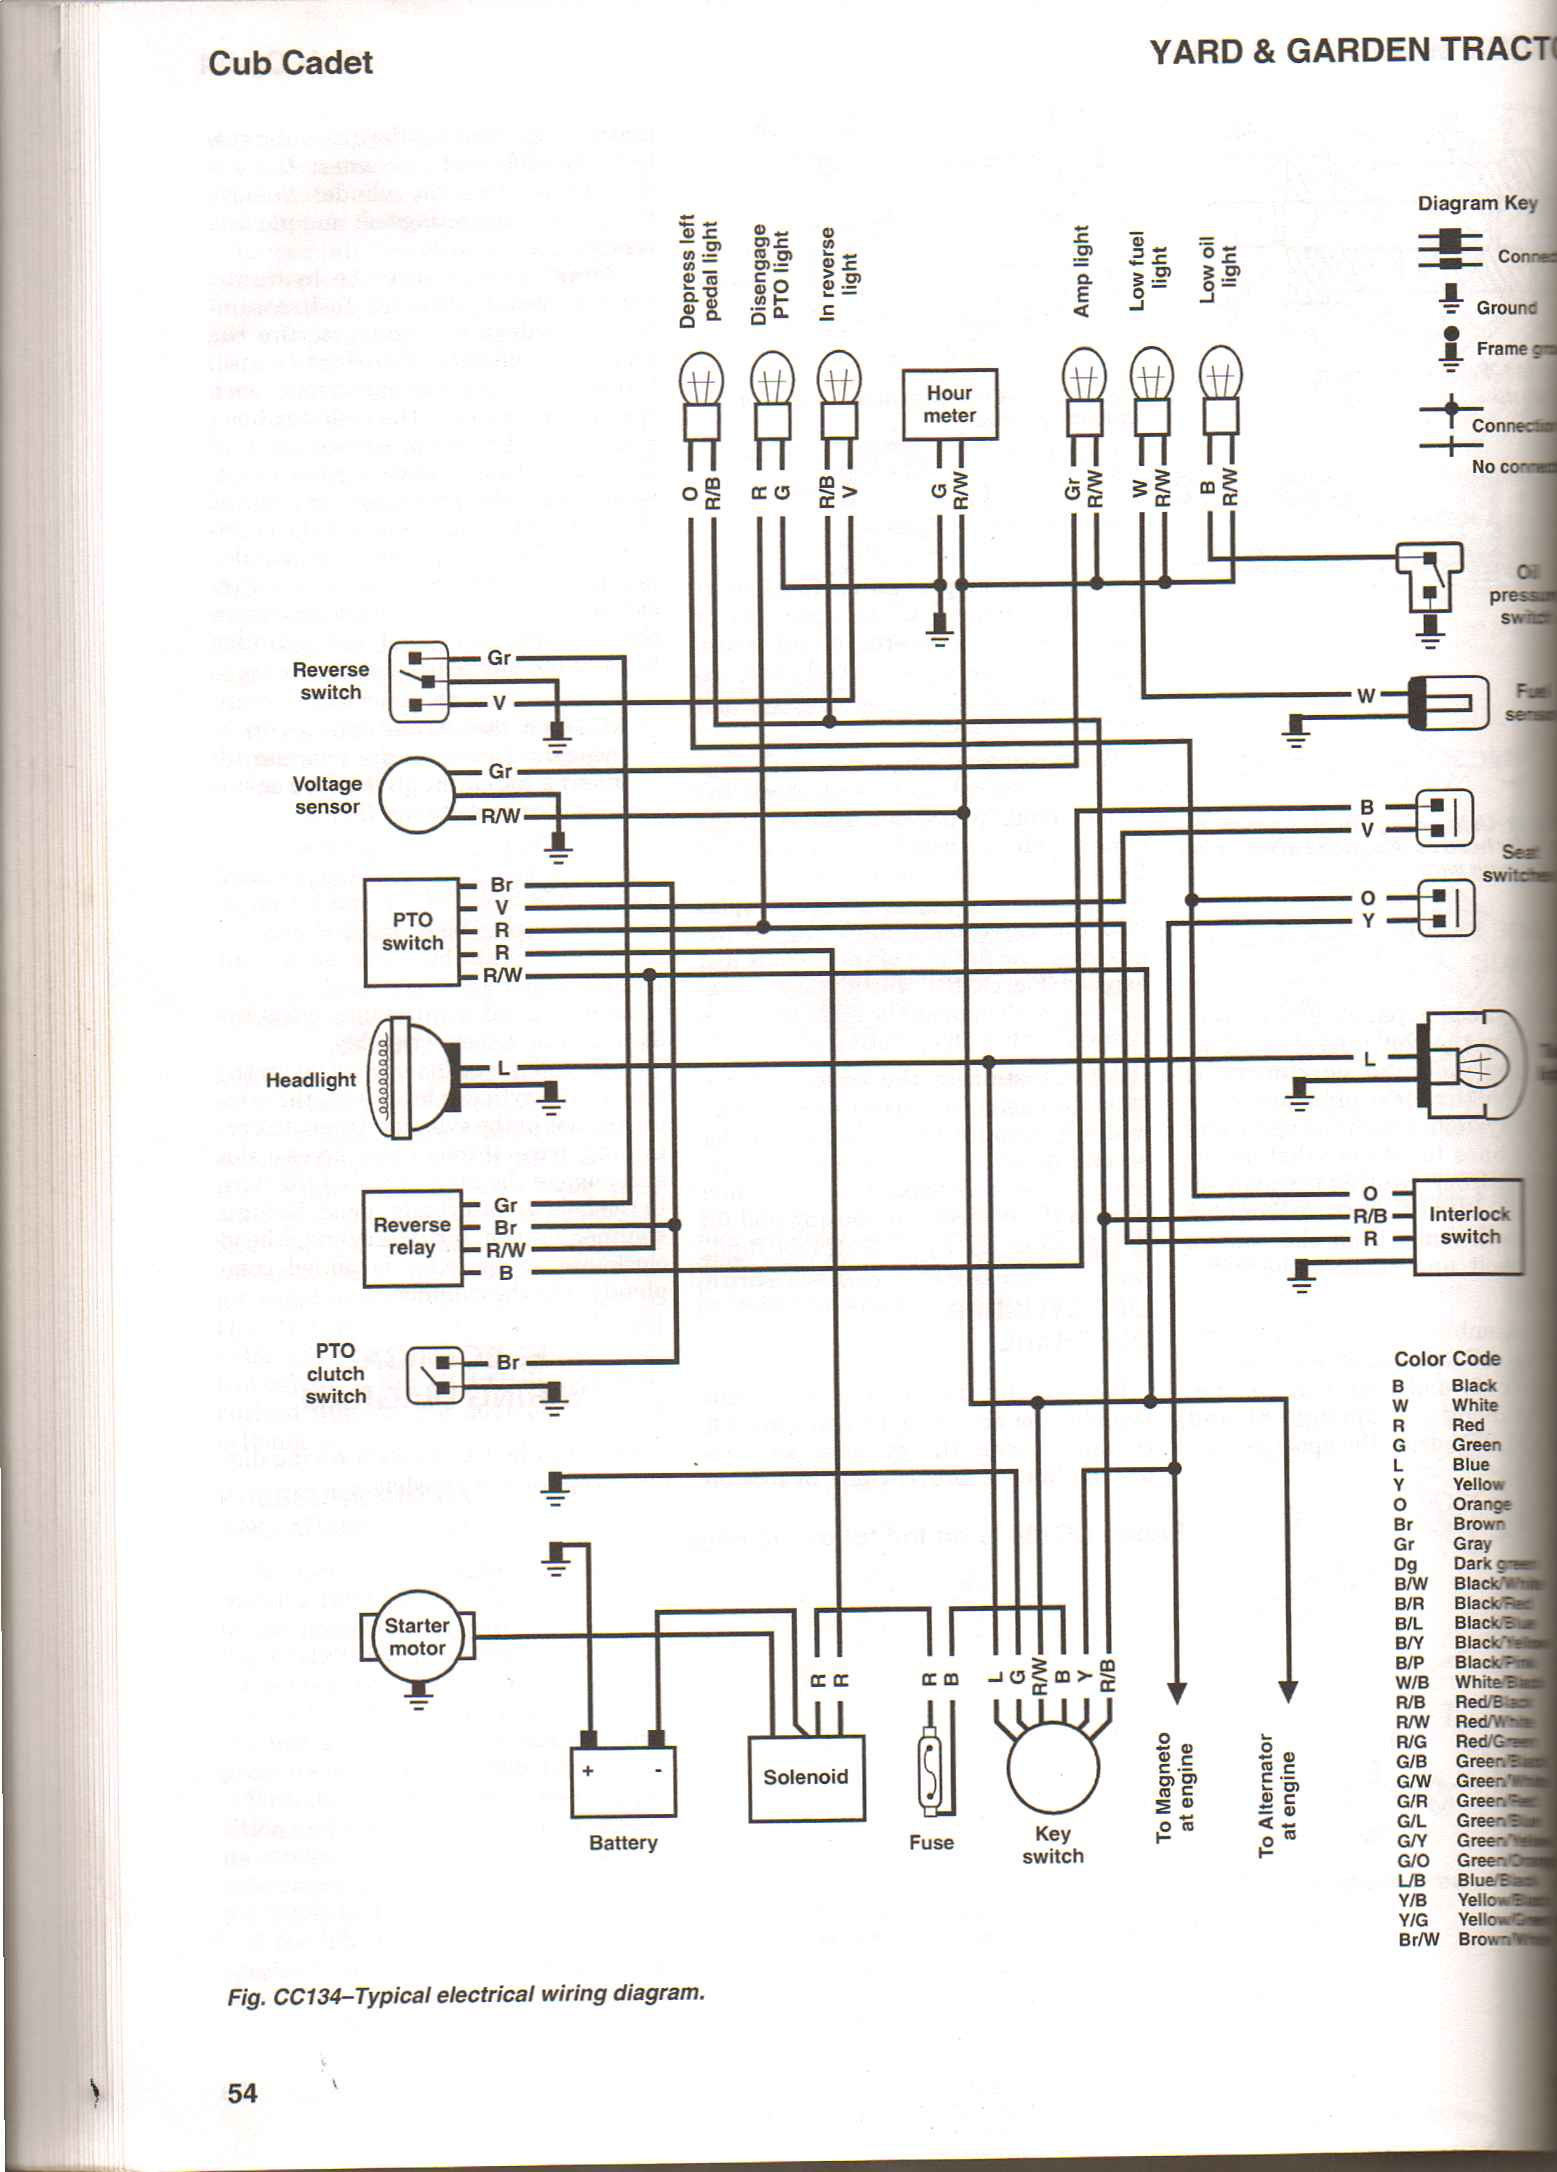 wiring diagram for cub cadet zero turn wiring diagram for cub cadet 125 rzt 50 pto switch will not start blades cub cadet mower